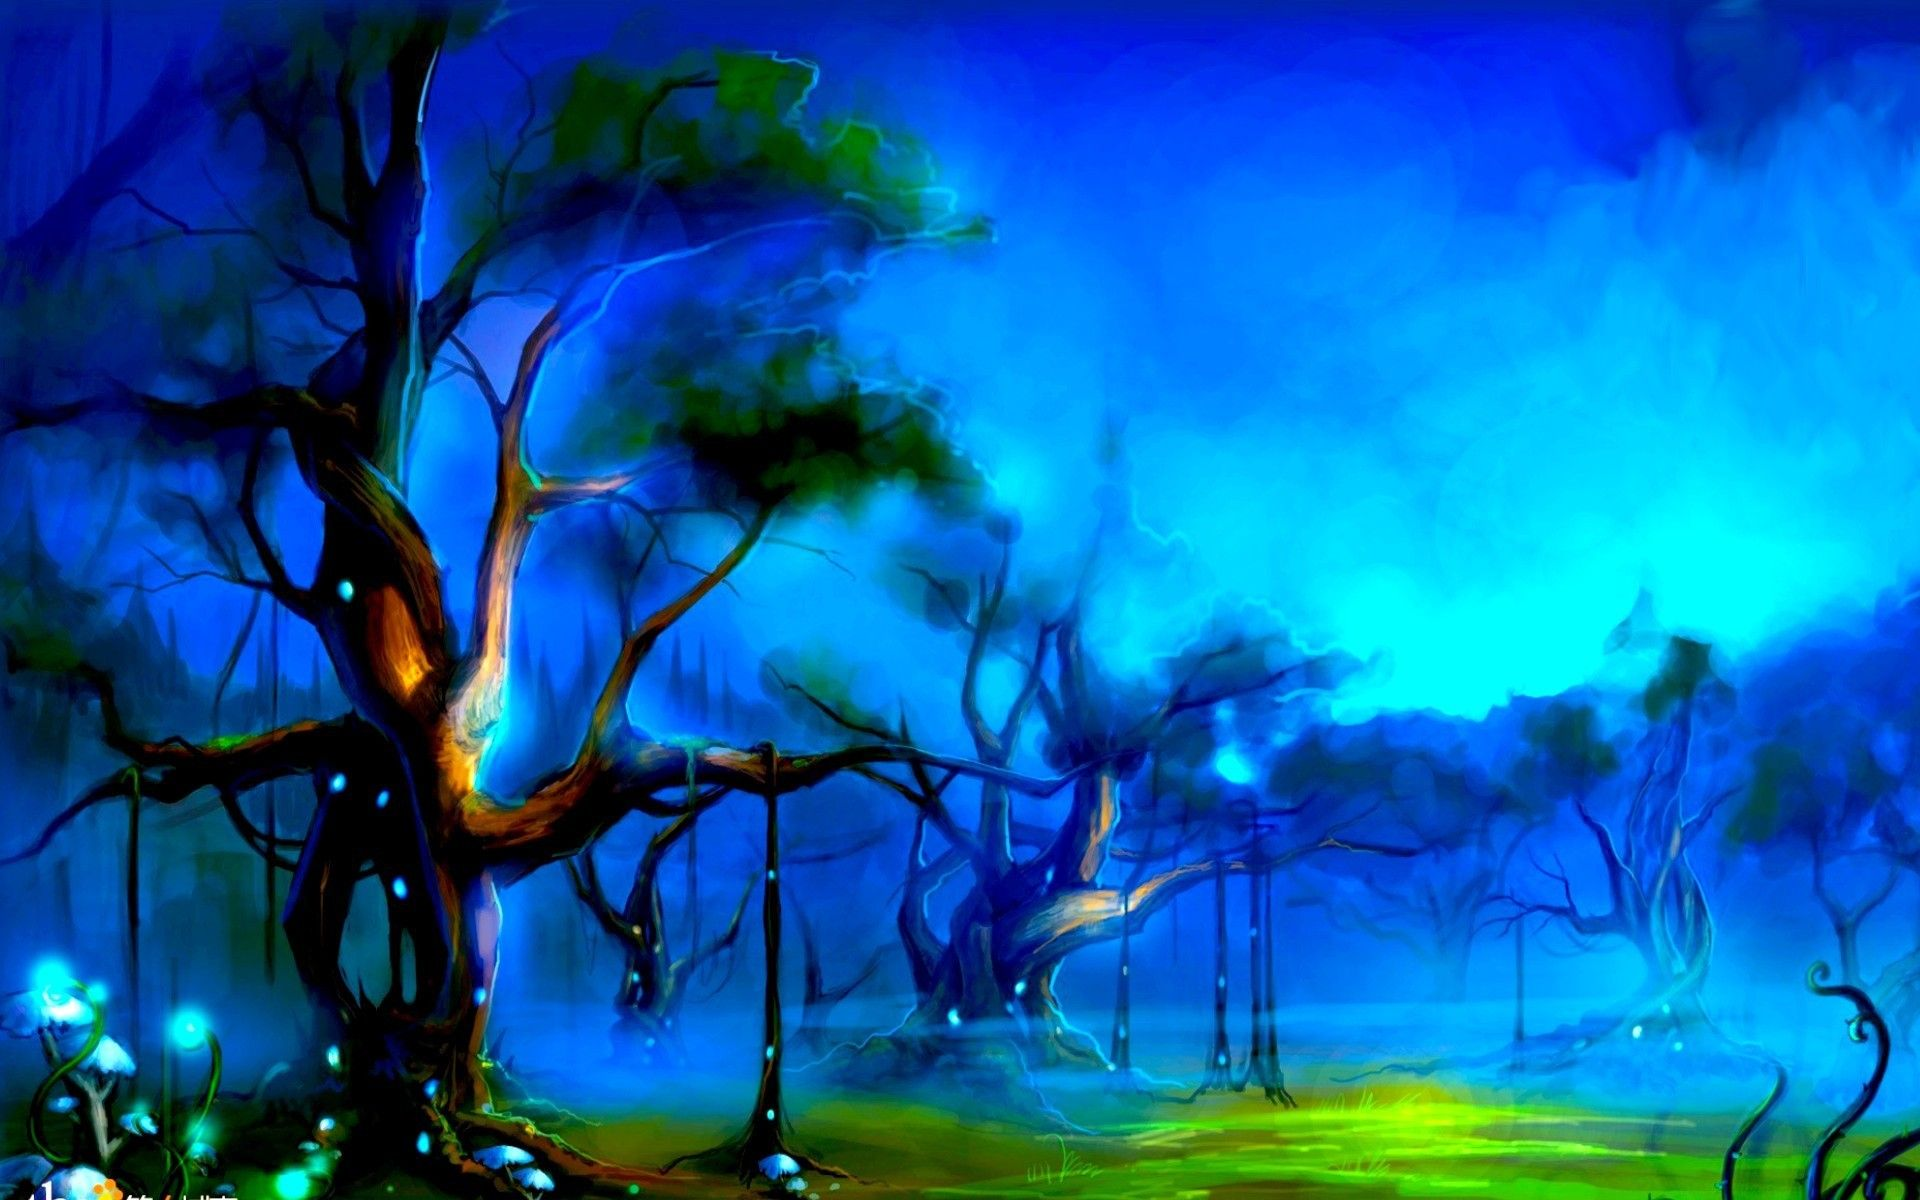 Mistique forest (1920x1200, forest)  via www.allwallpaper.in